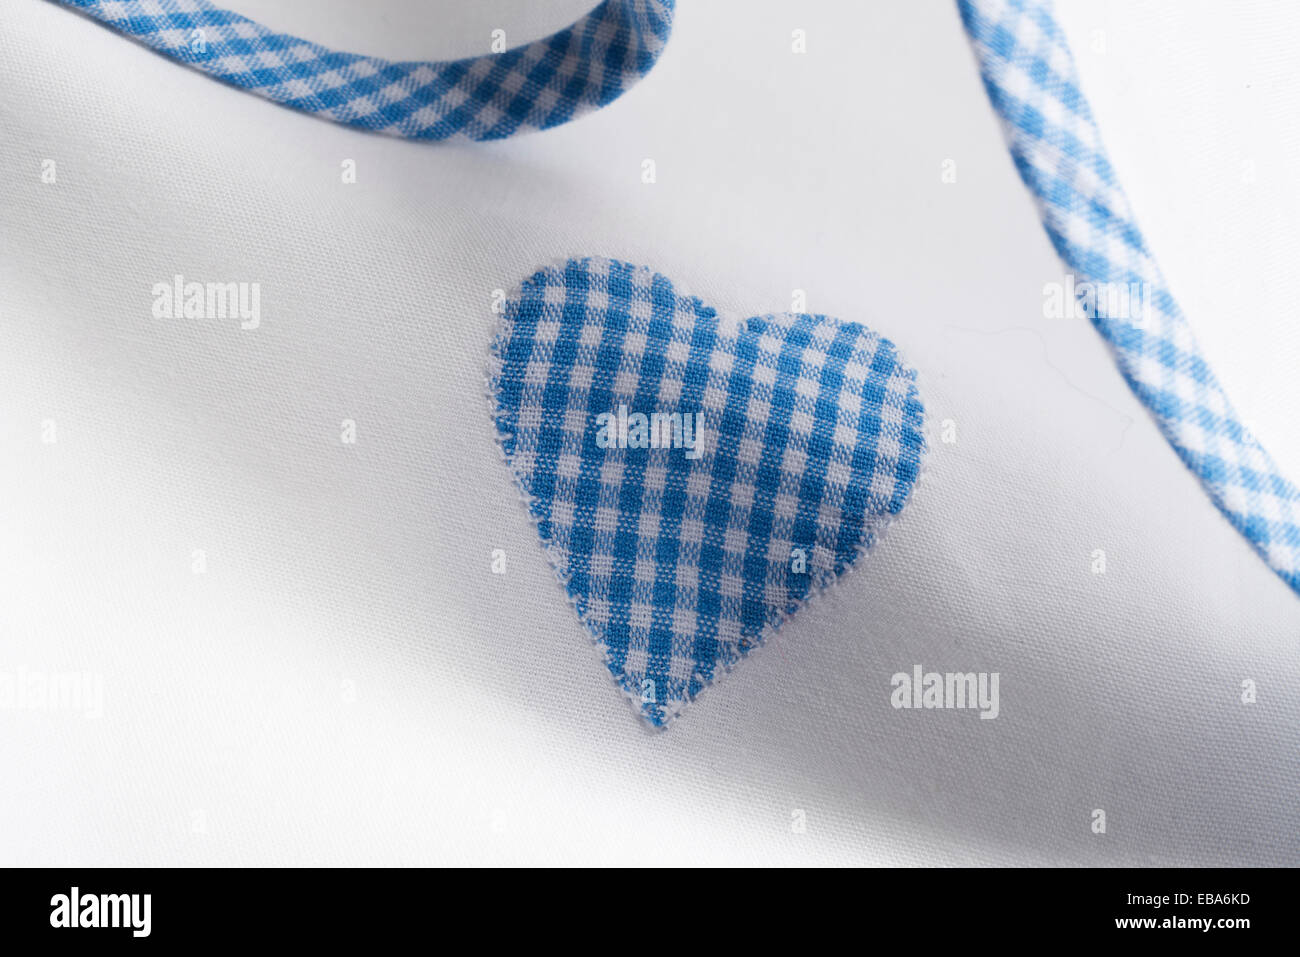 Gingham Appliqué hearts on white cotton sheet material. - Stock Image